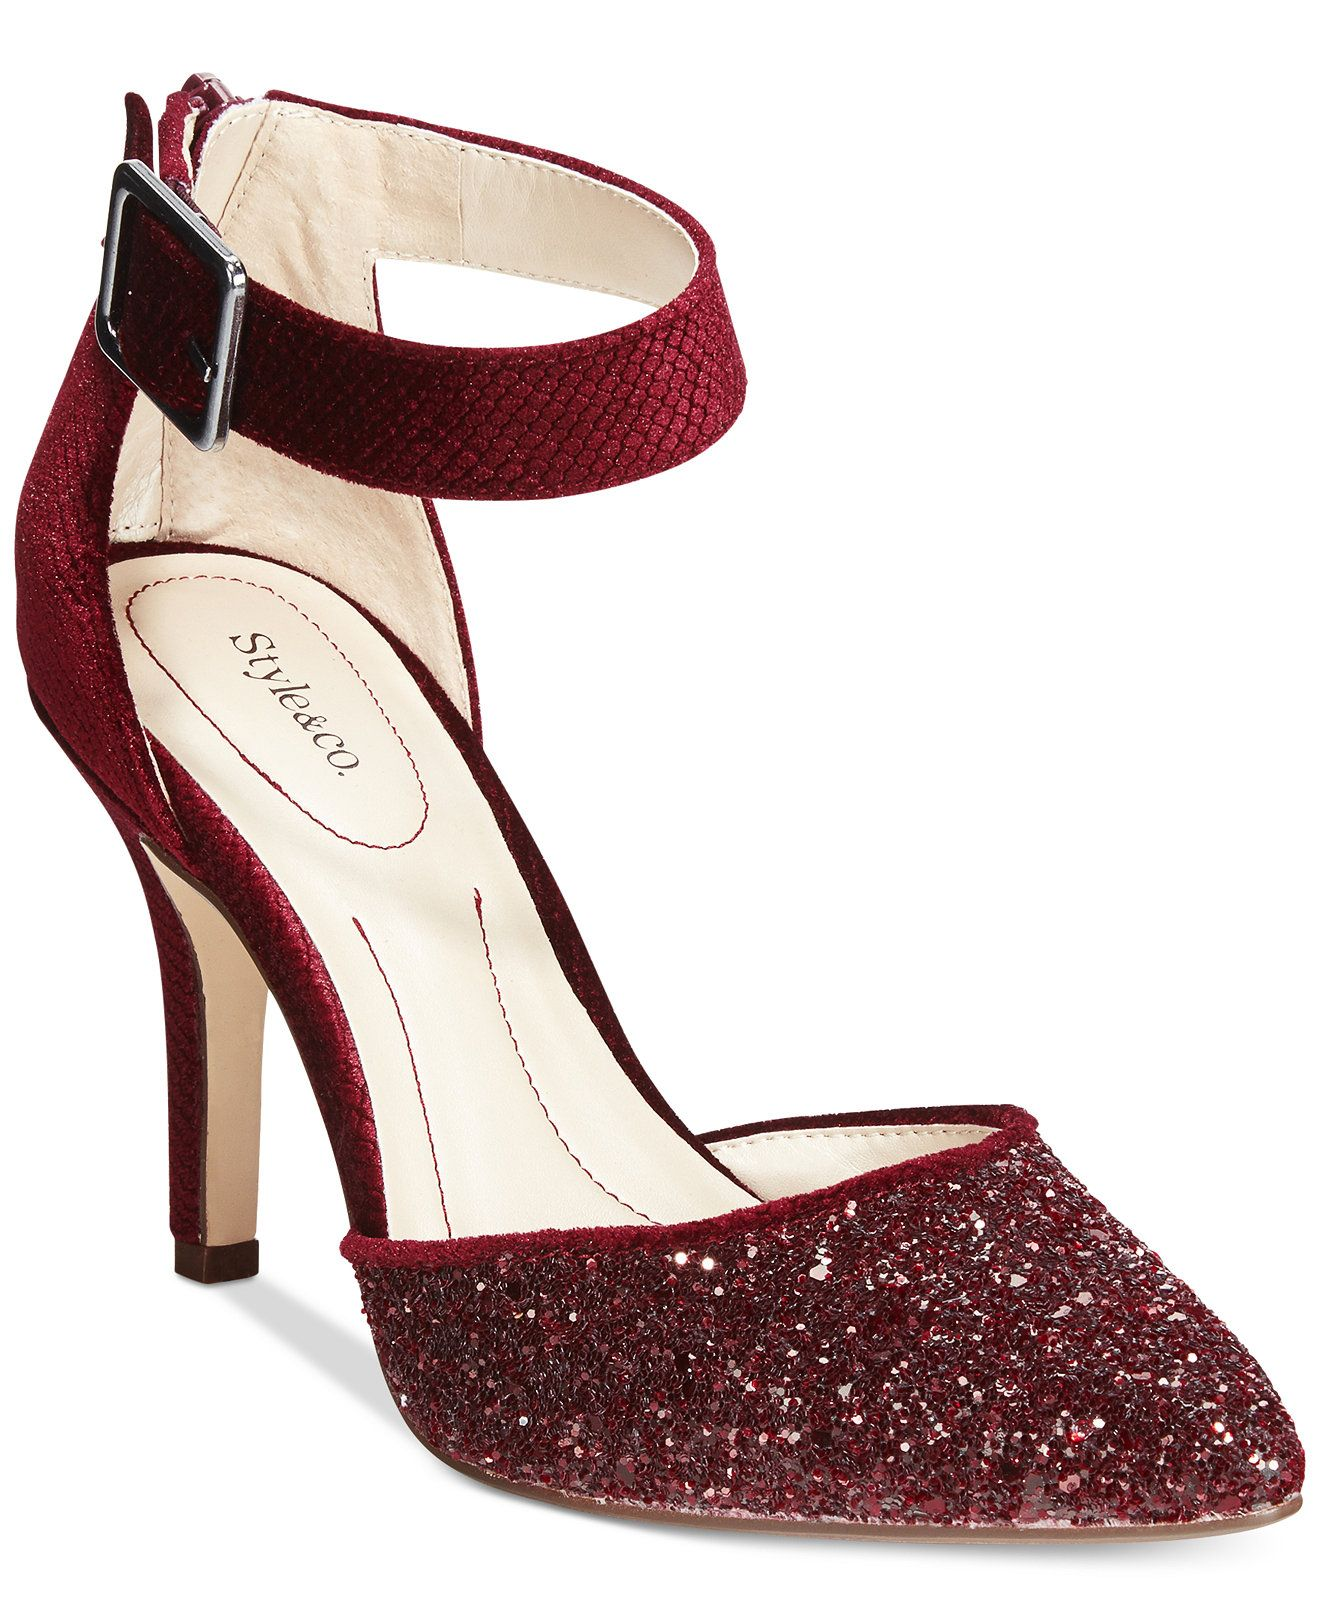 Style Co Galaxy2 Evening Pumps Only at Macys Sale